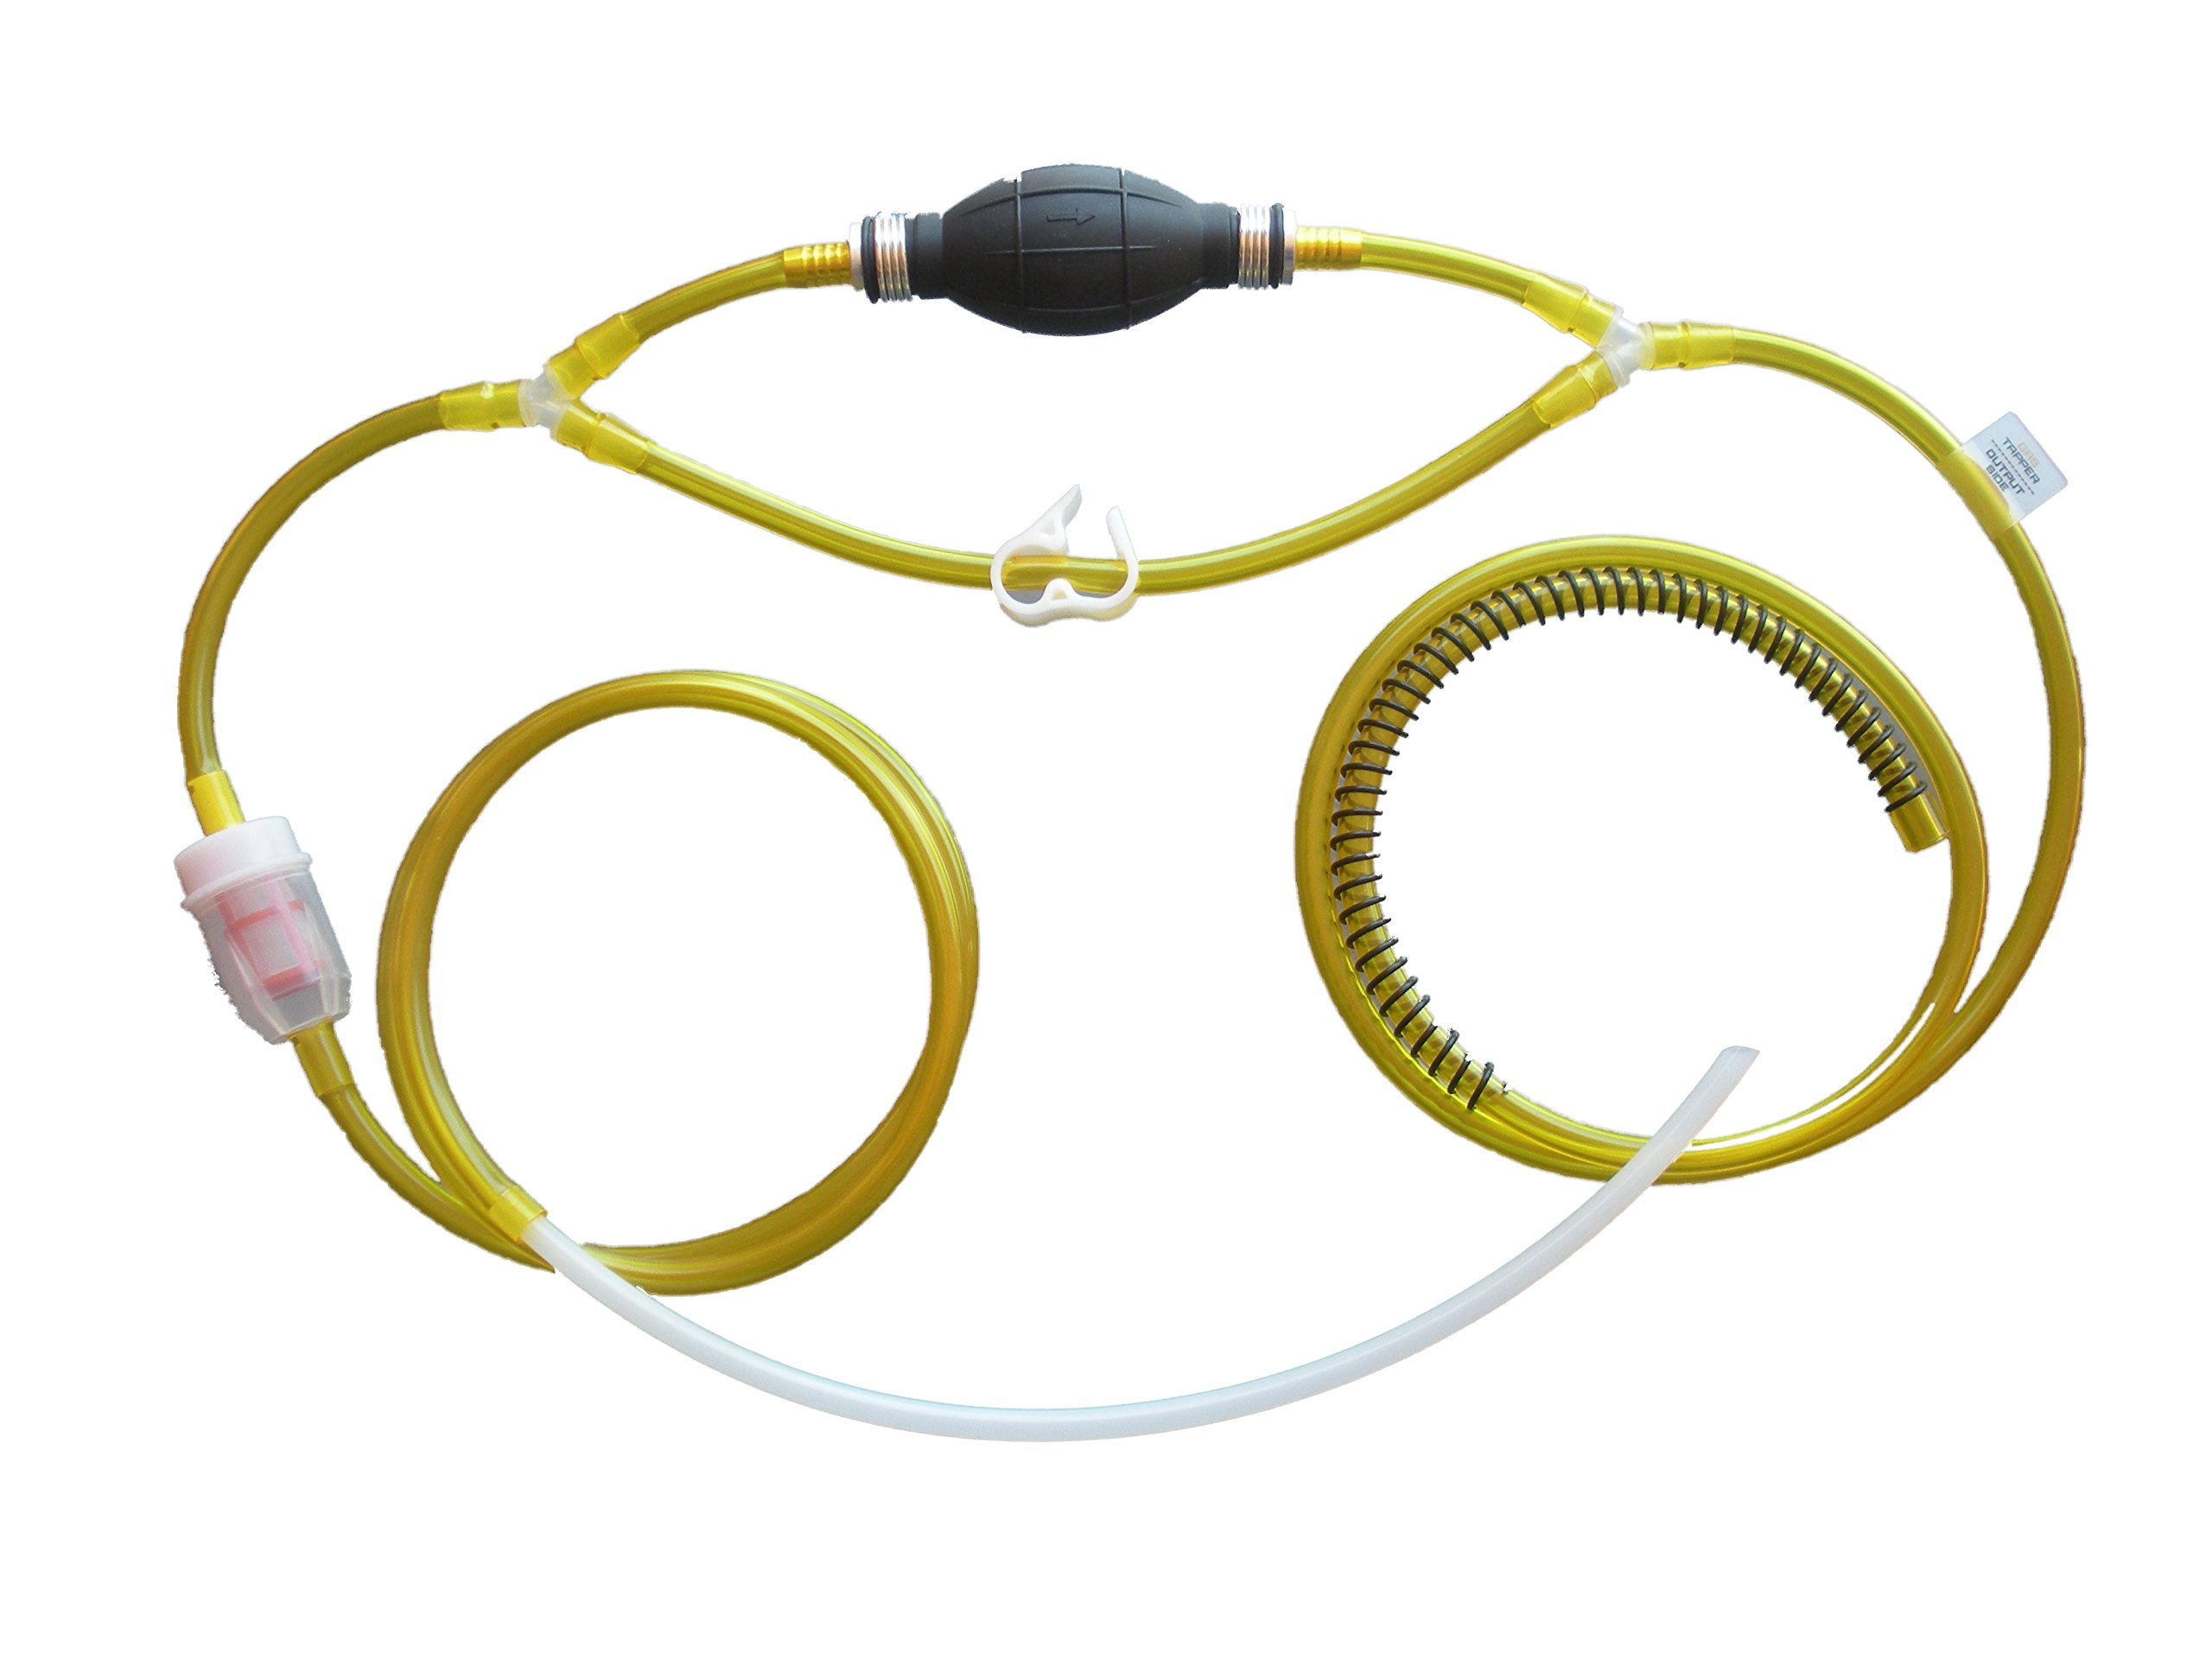 GasTapper (TM) Gravity Model B - Liquid Transfer Gasoline Siphon Pump 9' Feet of Real Fuel Hose - Universal Filter - Made in USA - See All 5 Models - Search for ''Gentap'' in Amazon Search Bar - (See GasTapper Gravity for version w/modern car adapter)